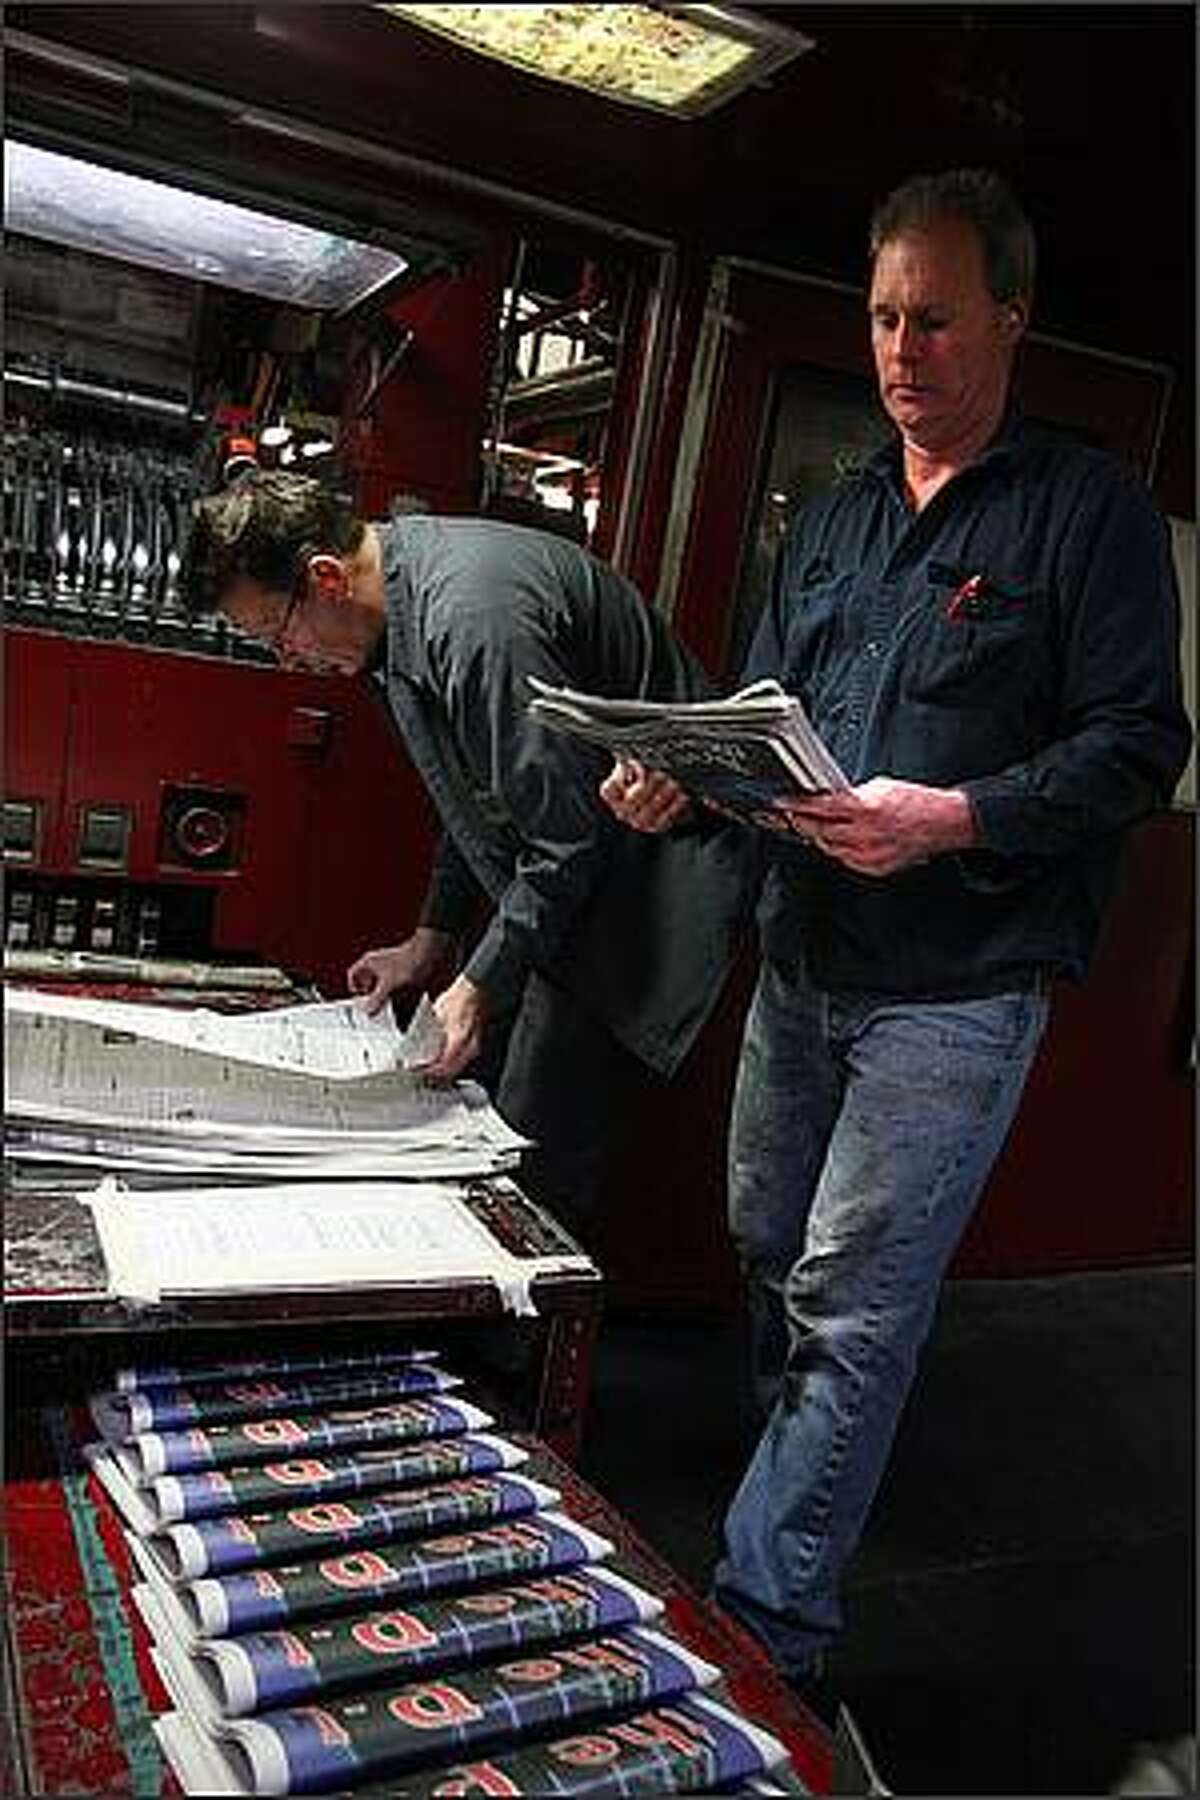 Lead Press Operator Michael Klop adjusts the folder settings so everything lines up at the start of the run while Ed Harding (right) check the front page color of the final edition of the Seattle Post-Intelligencer at the Seattle Times North Creek facility in Bothell, Washington on March 16, 2009. The Seattle Post Intelligencer has been publishing since 1863.